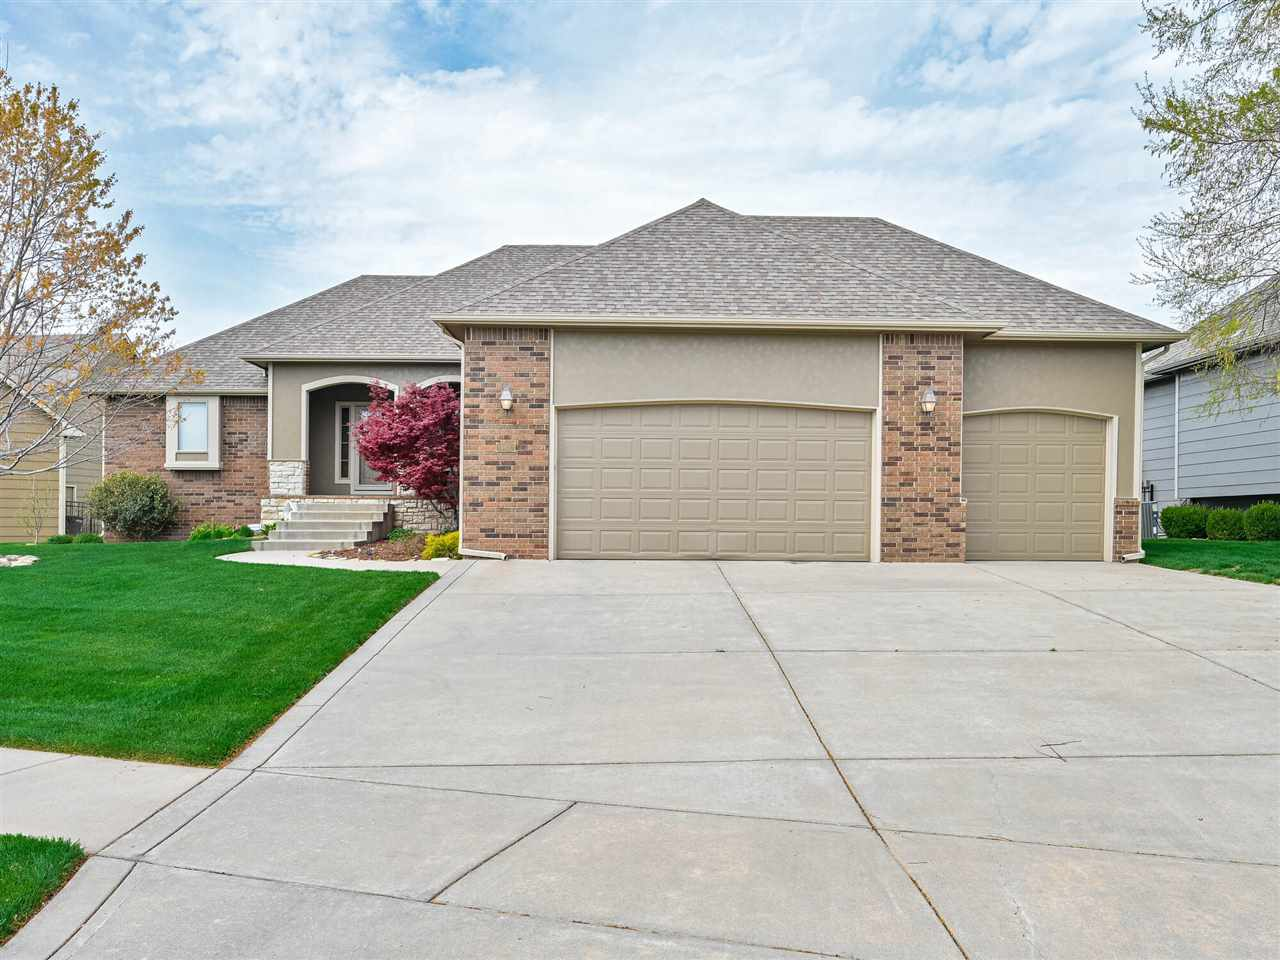 Wonderful home in the highly desired Watercress development in the Maize School District! The home s